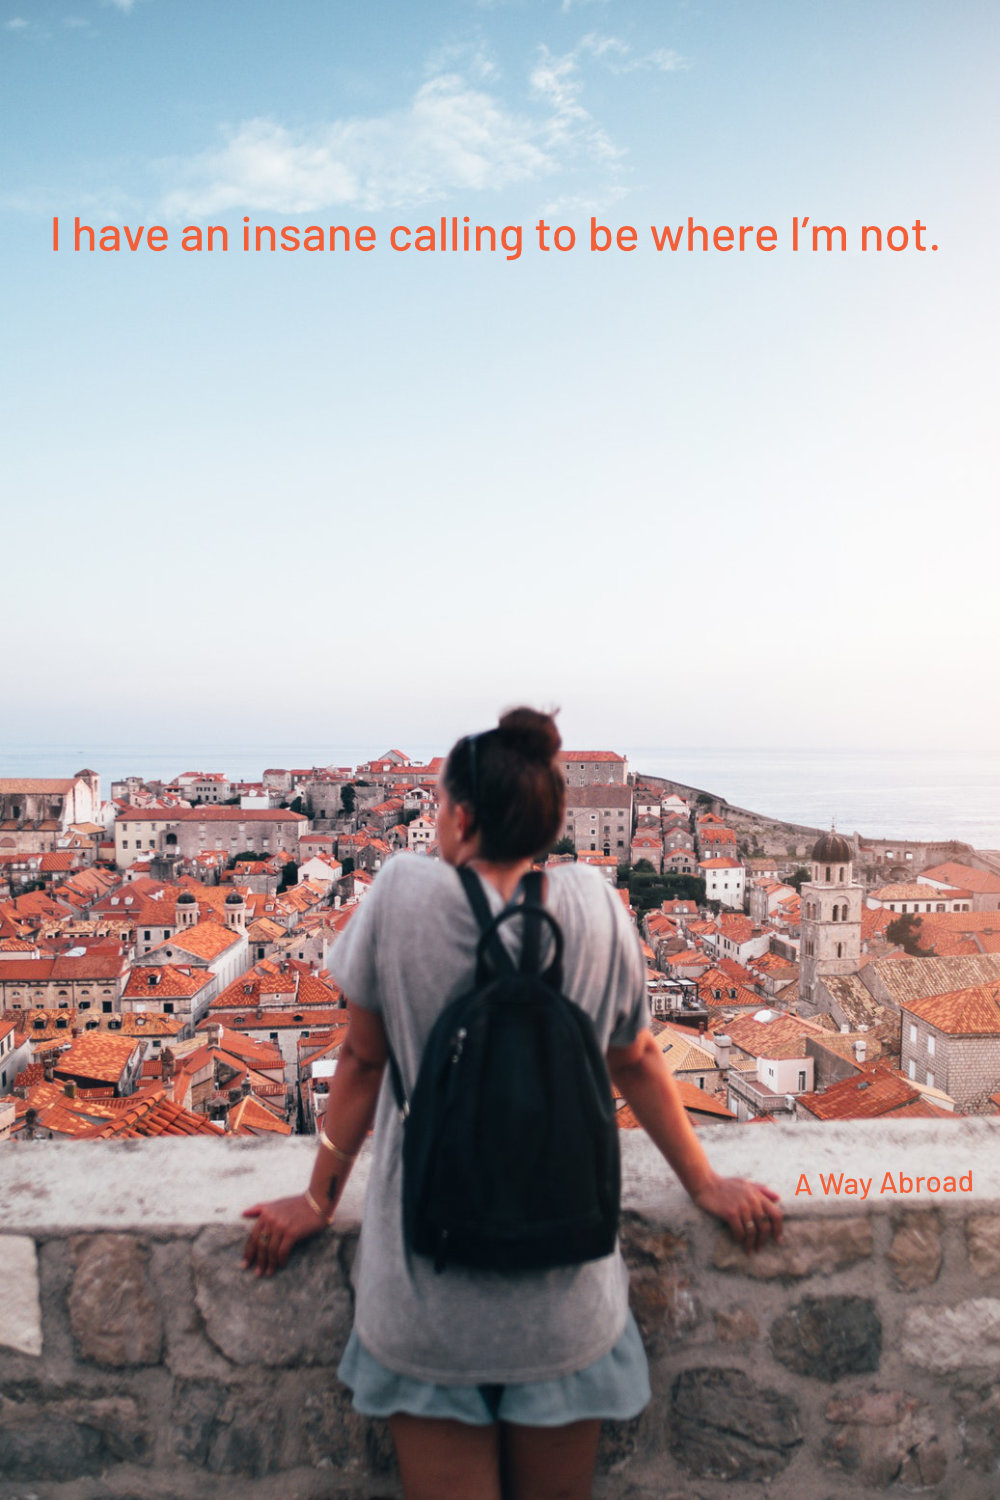 woman overlooking the coast of Portugal with houses below and a travel quote